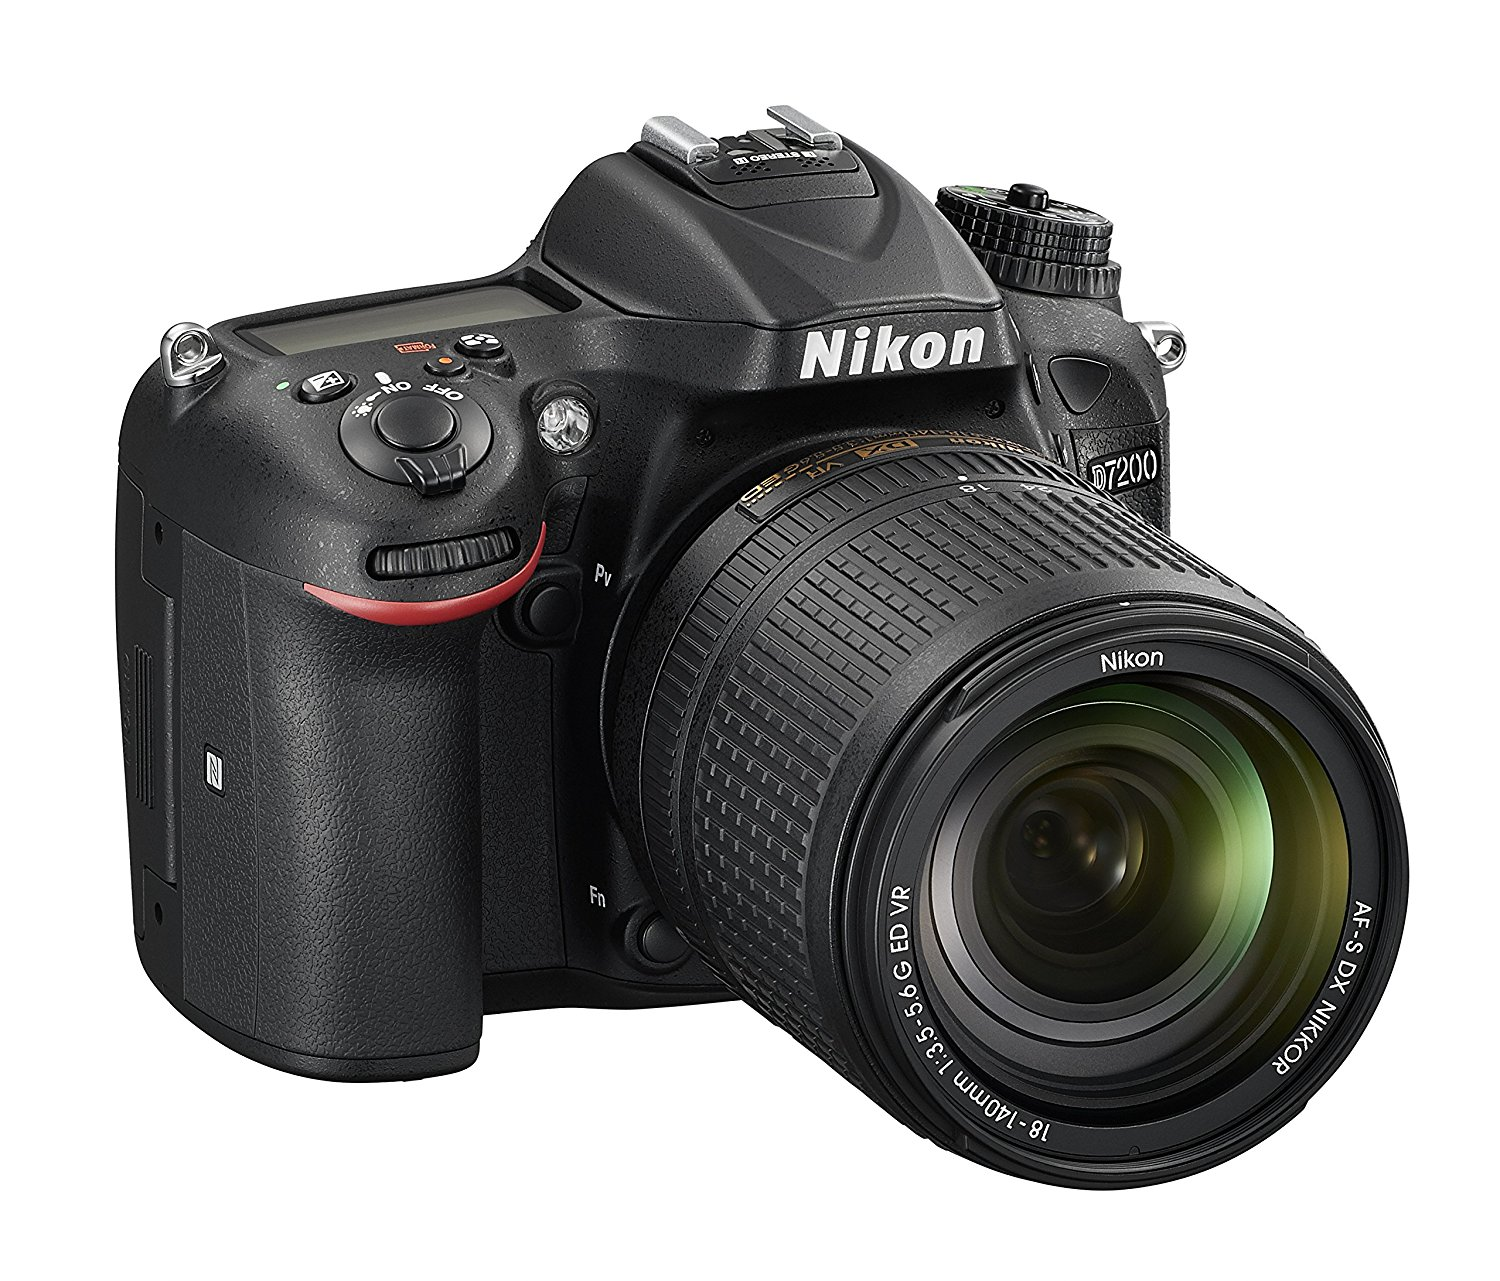 nikon d7200 with lens image